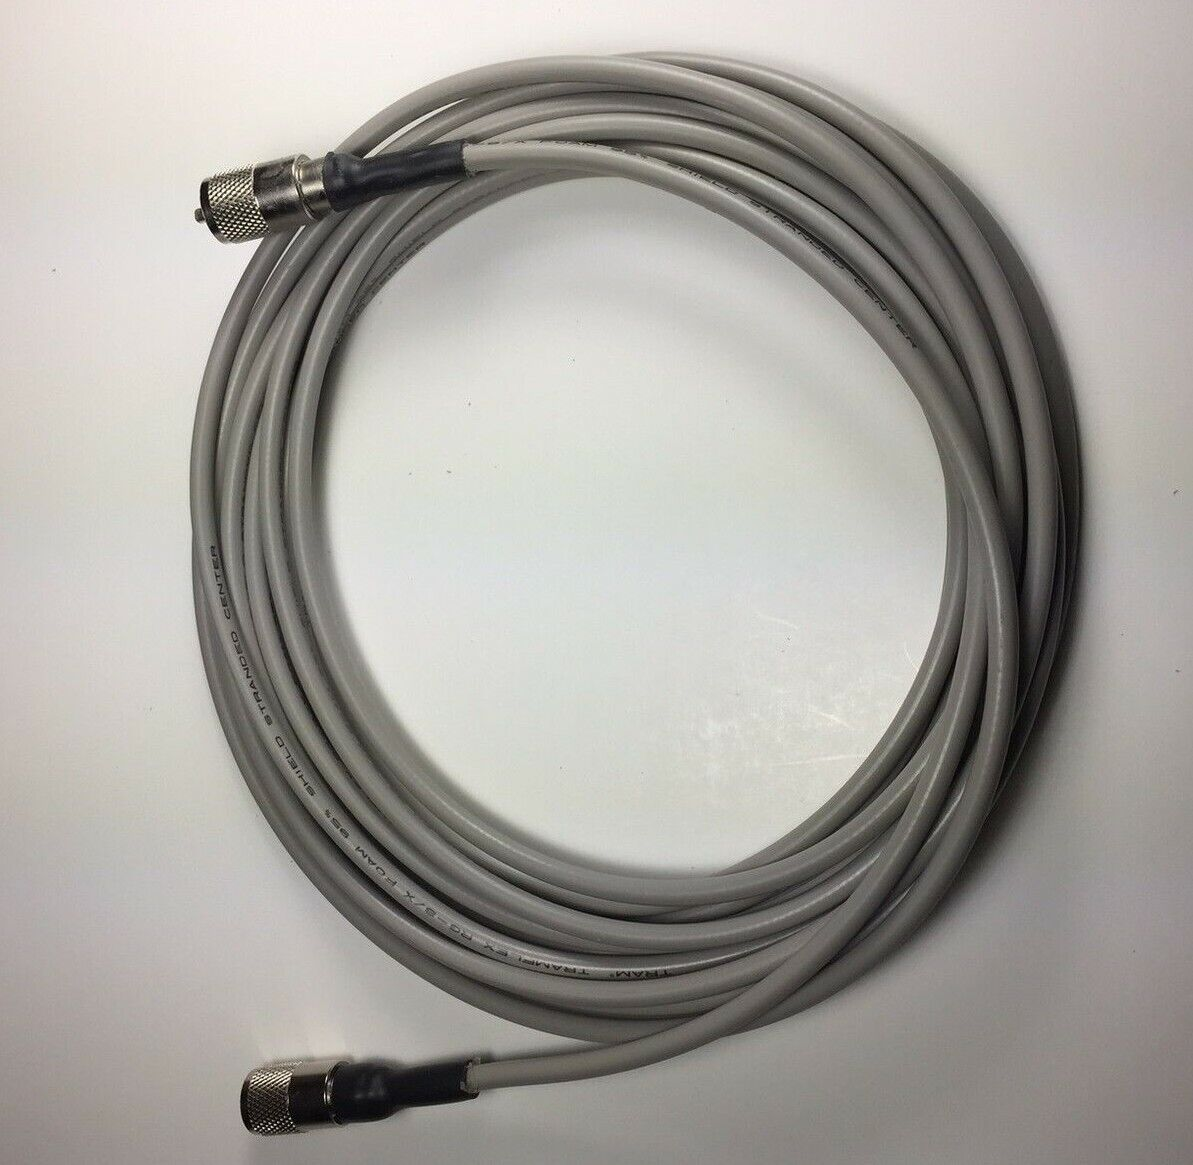 RG-8X COAX CABLE JUMPER 18 FT SEALED PL-259s USA MADE PROFESSIONAL CB HAM RADIO. Available Now for 1975.00